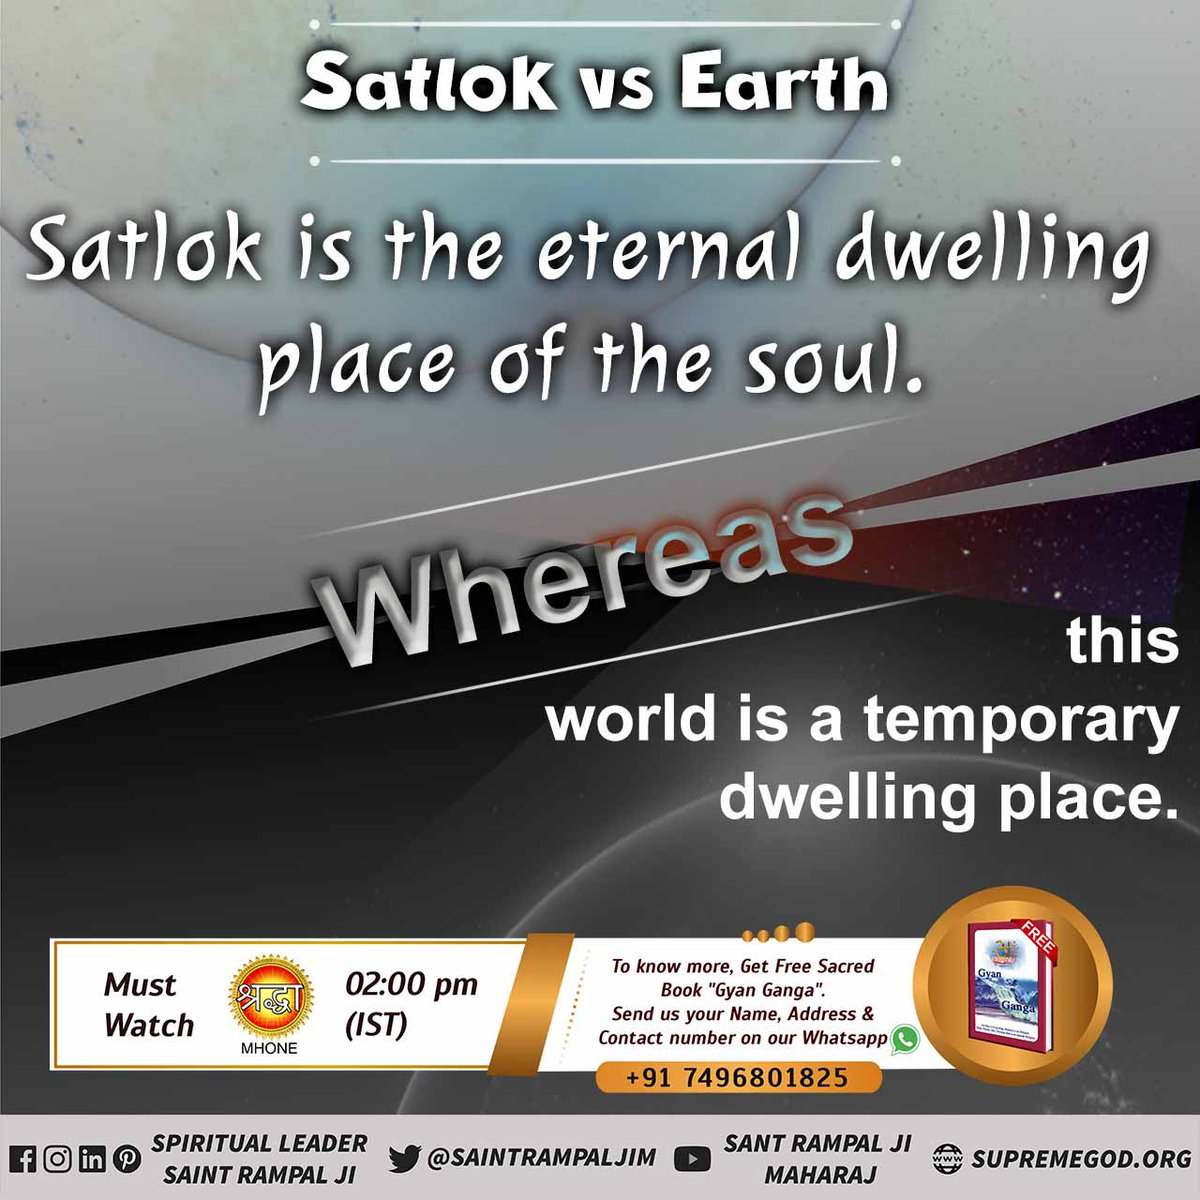 #fridaymorning Satlok is the eternal dwelling place of the soul whereas this world is a temporary dwelling place so Therefore, leaving this land, we should go to Satlok after devotion. for more information about this must visit satlok aashram YouTube channel